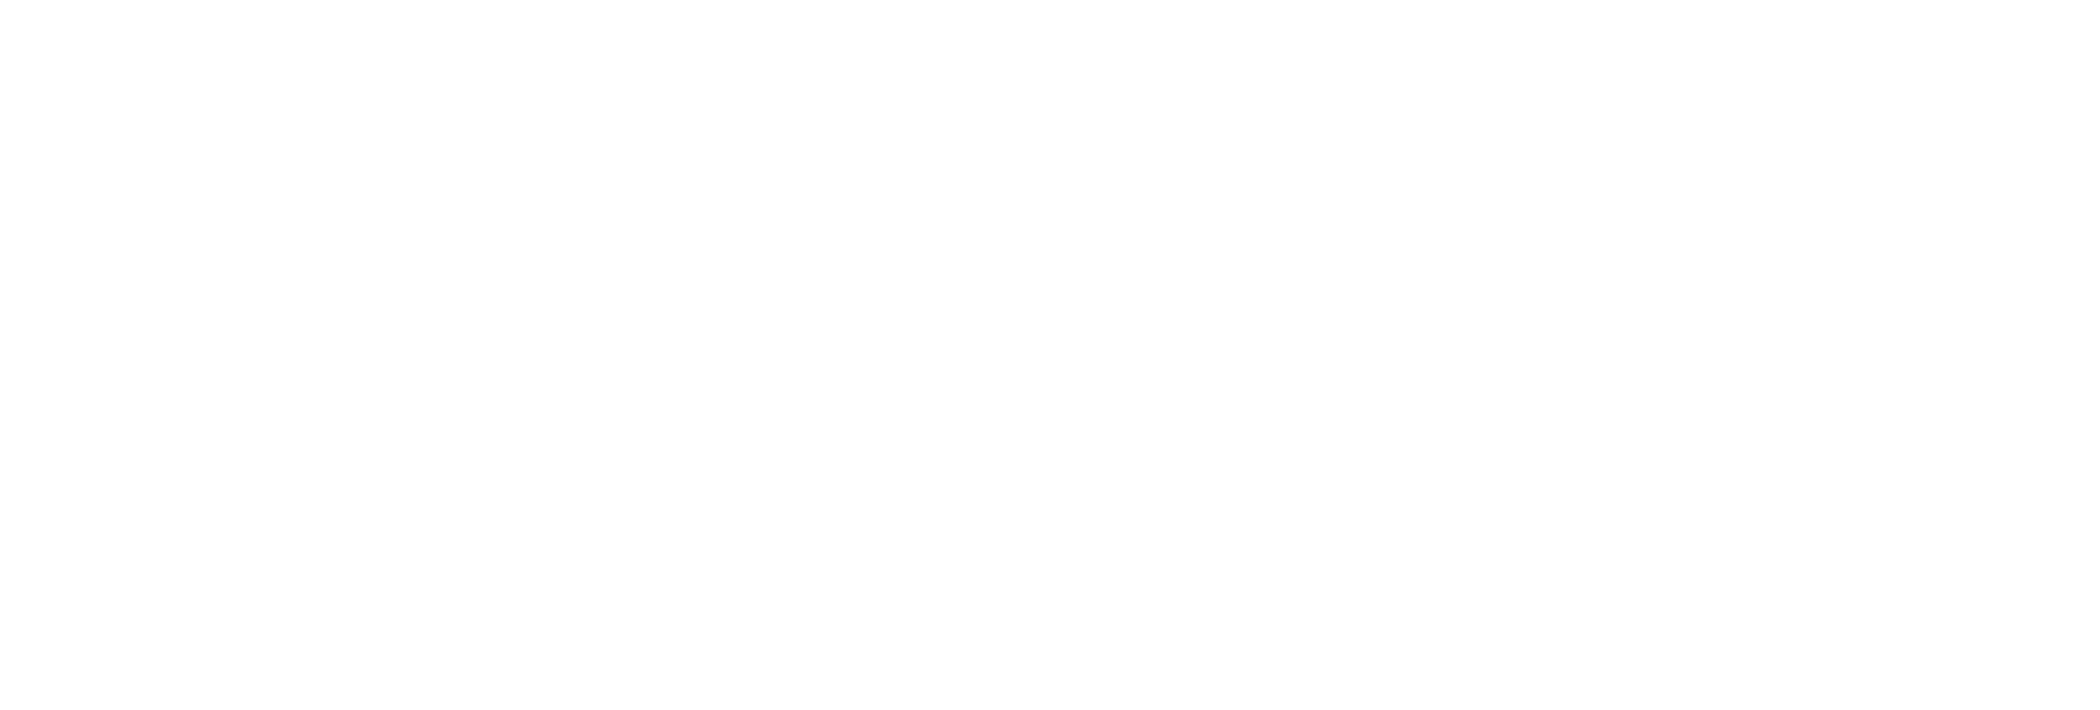 PFP Fire Suppression Systems White.png